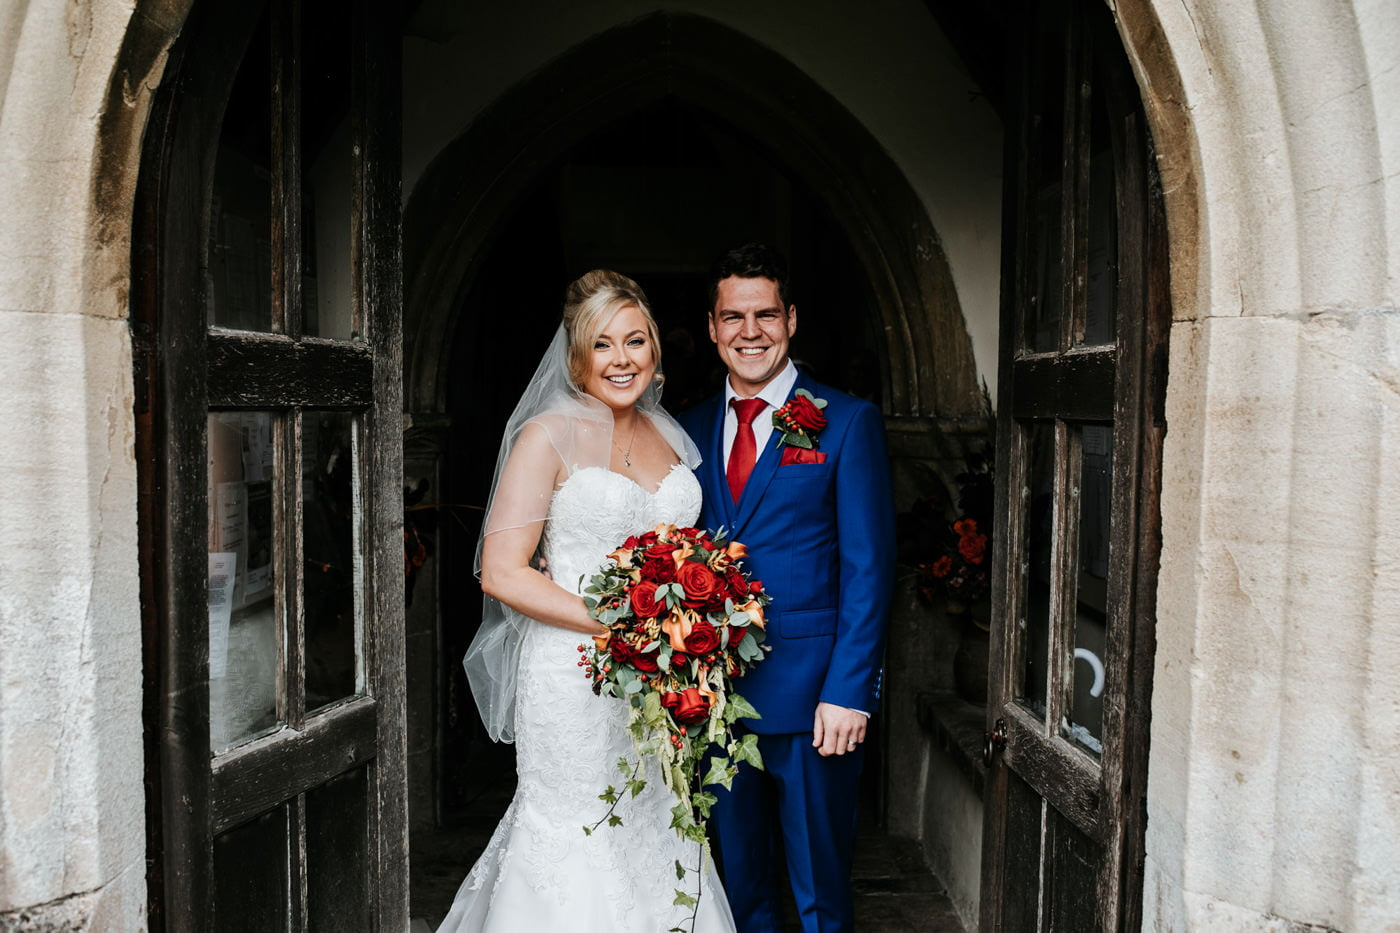 Natalie and Rob, Widbrook Grange, Wiltshire 19